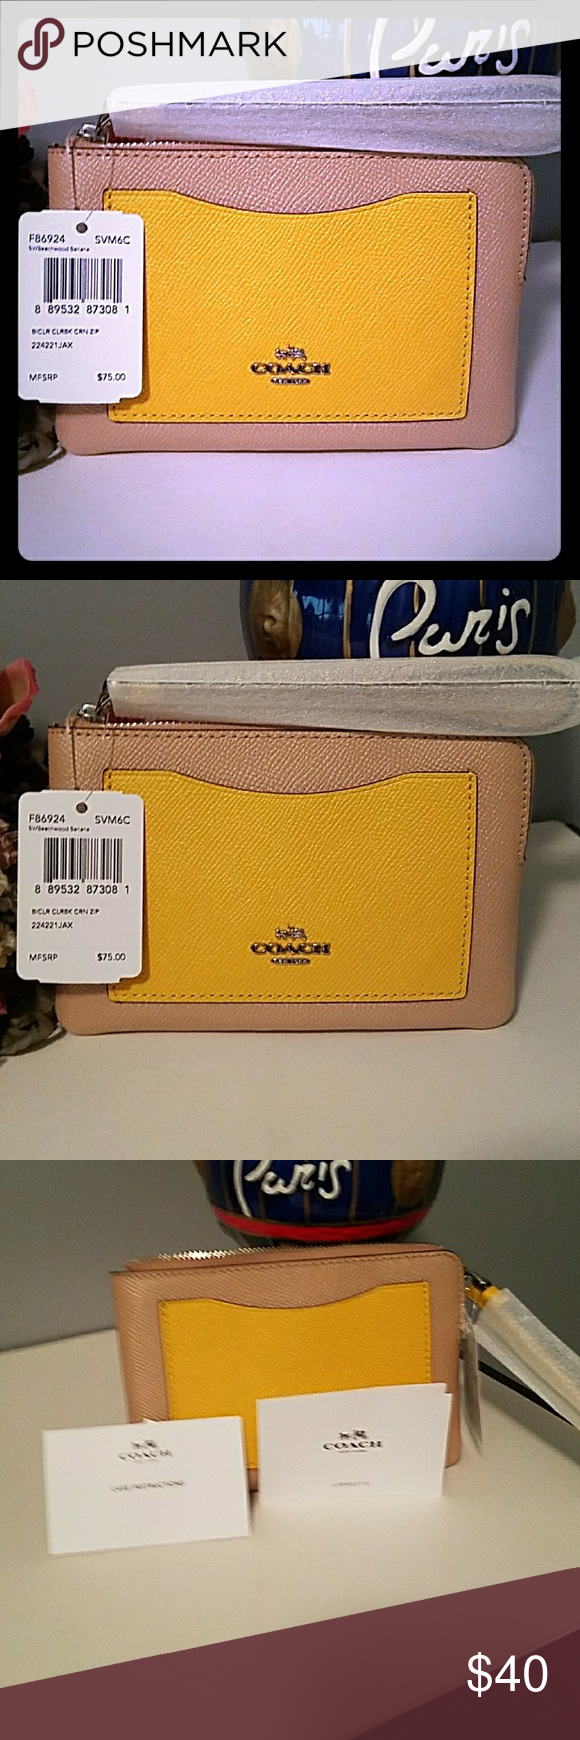 aa63627582fd AUTHENTIC COACH CORNER ZIP WRISTLET AUTHENTIC COACH CORNER ZIP WRISTLET IN  TAN COATED CANVAS WITH LEATHER